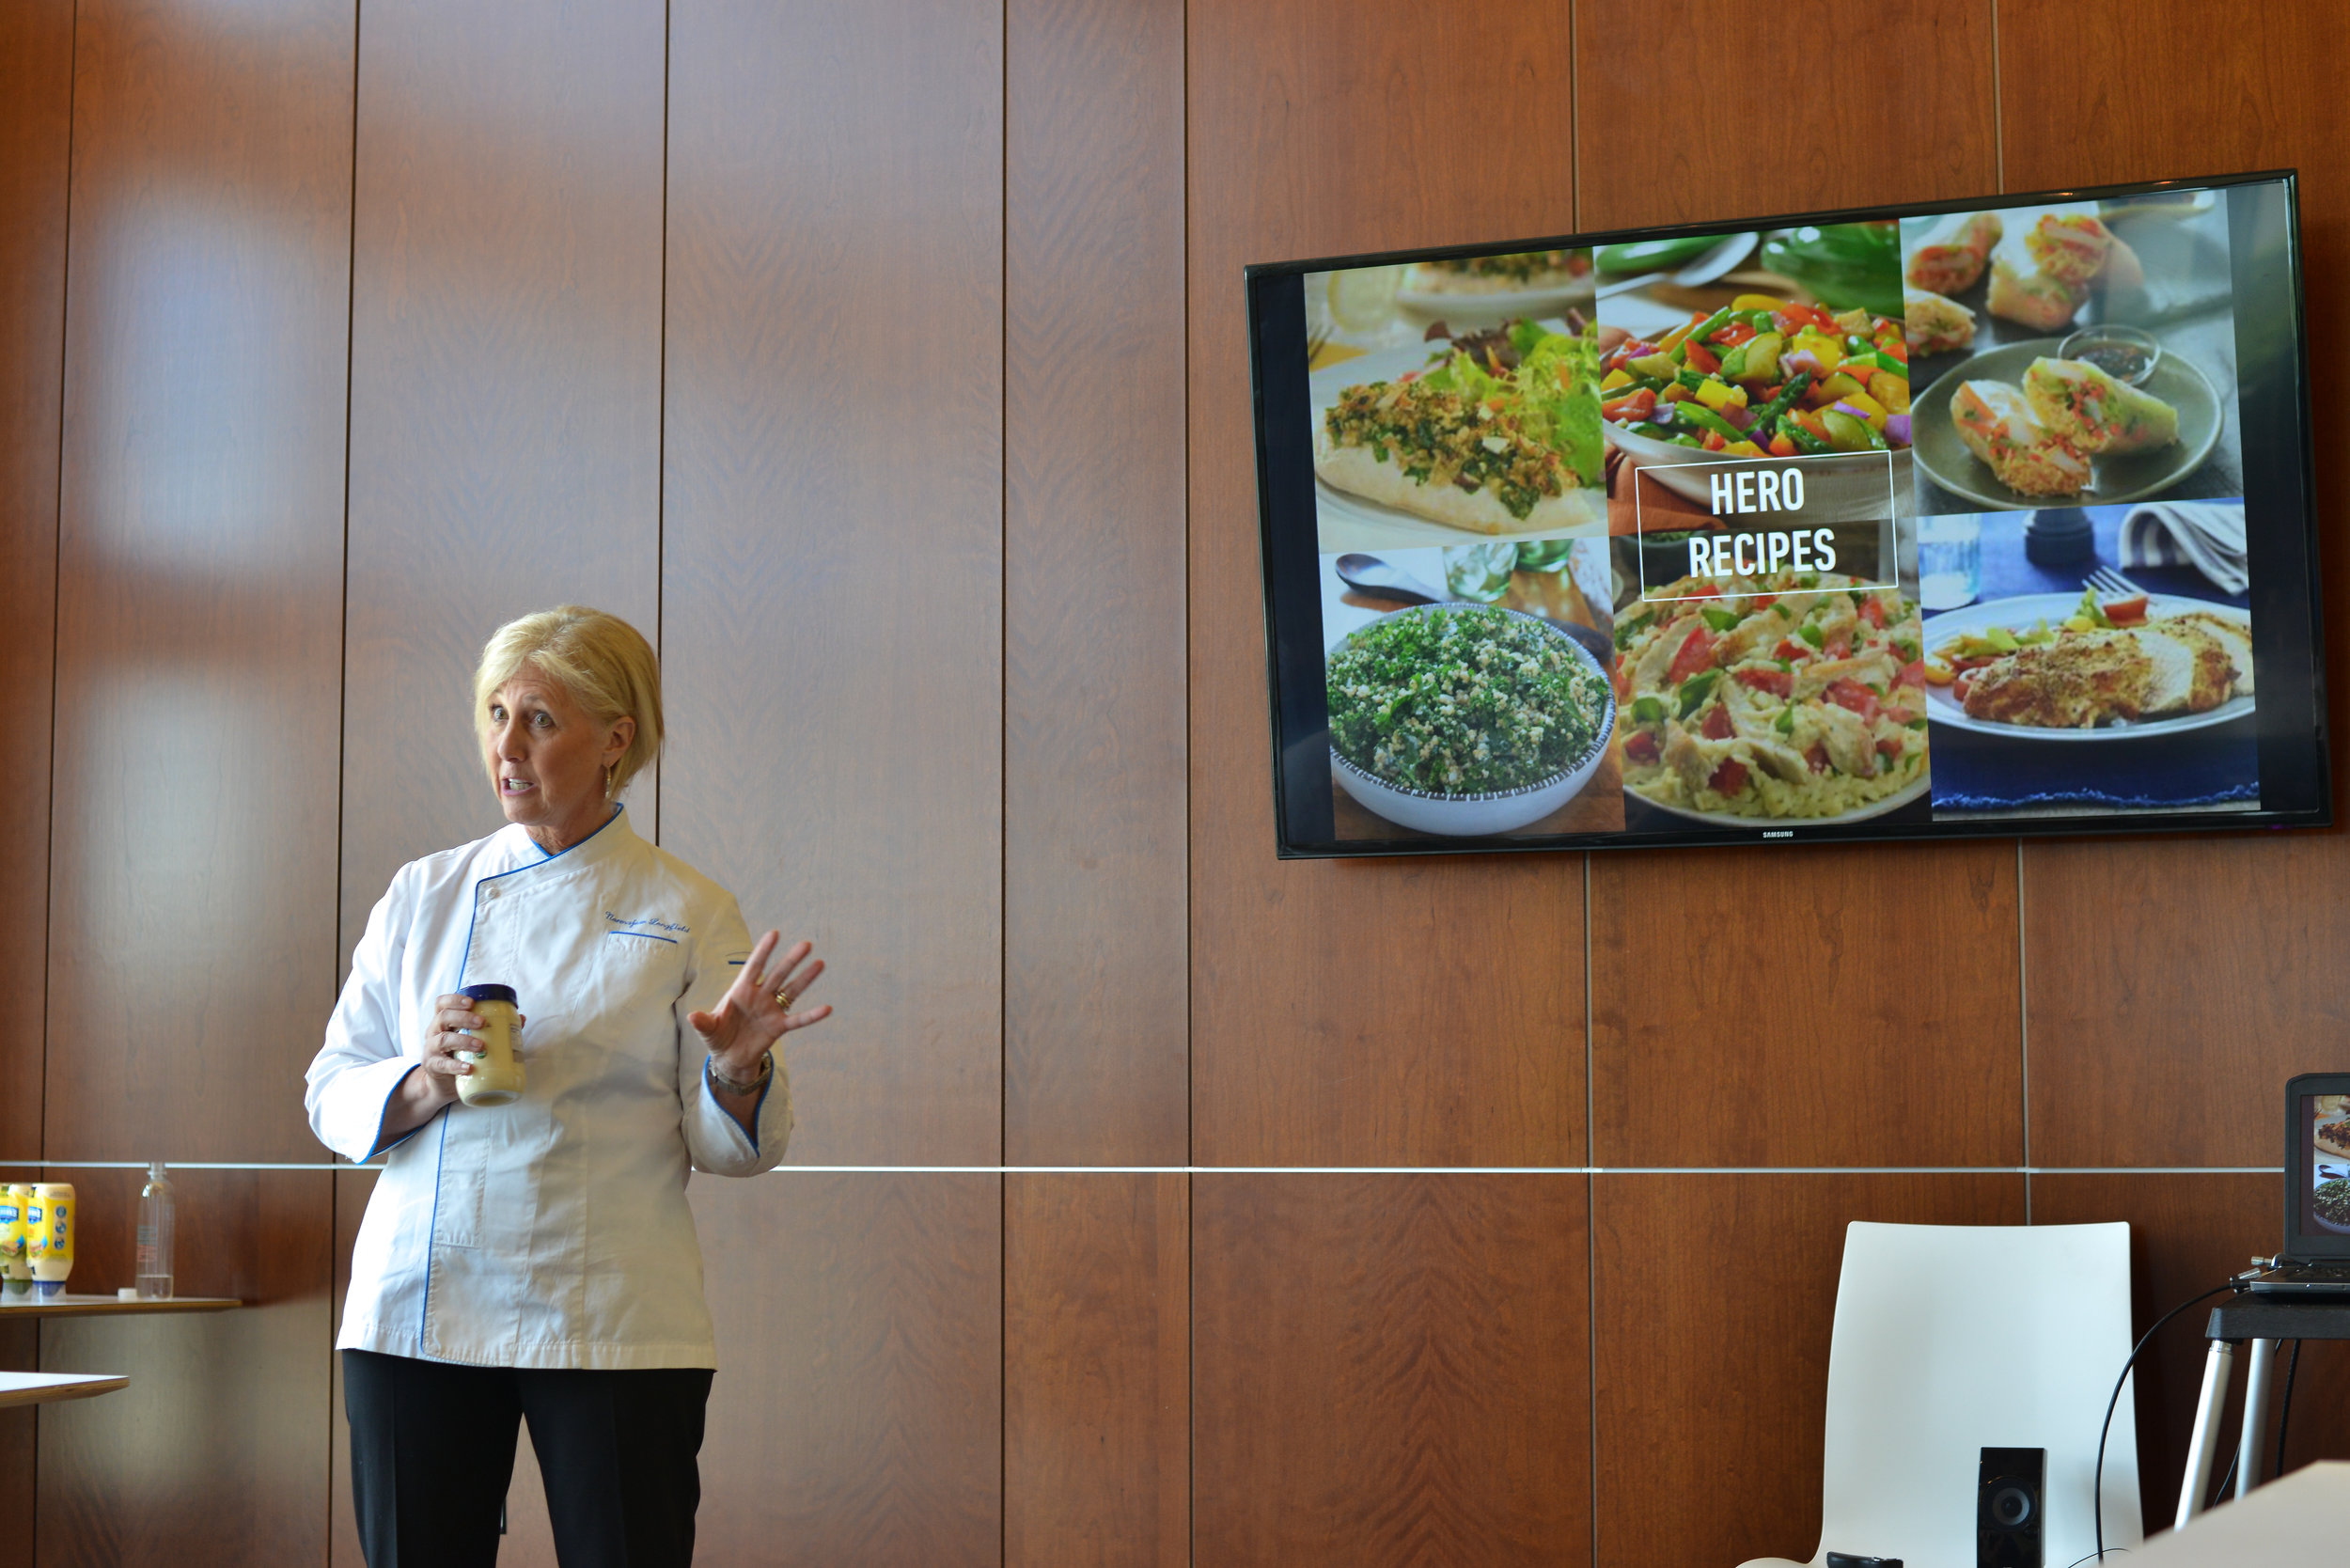 "Unilever Chef Normajean Longfield, head of Unilever Test Kitchen speaking about her work developing recipes. ""I have the best job in the world!"" I agree!"